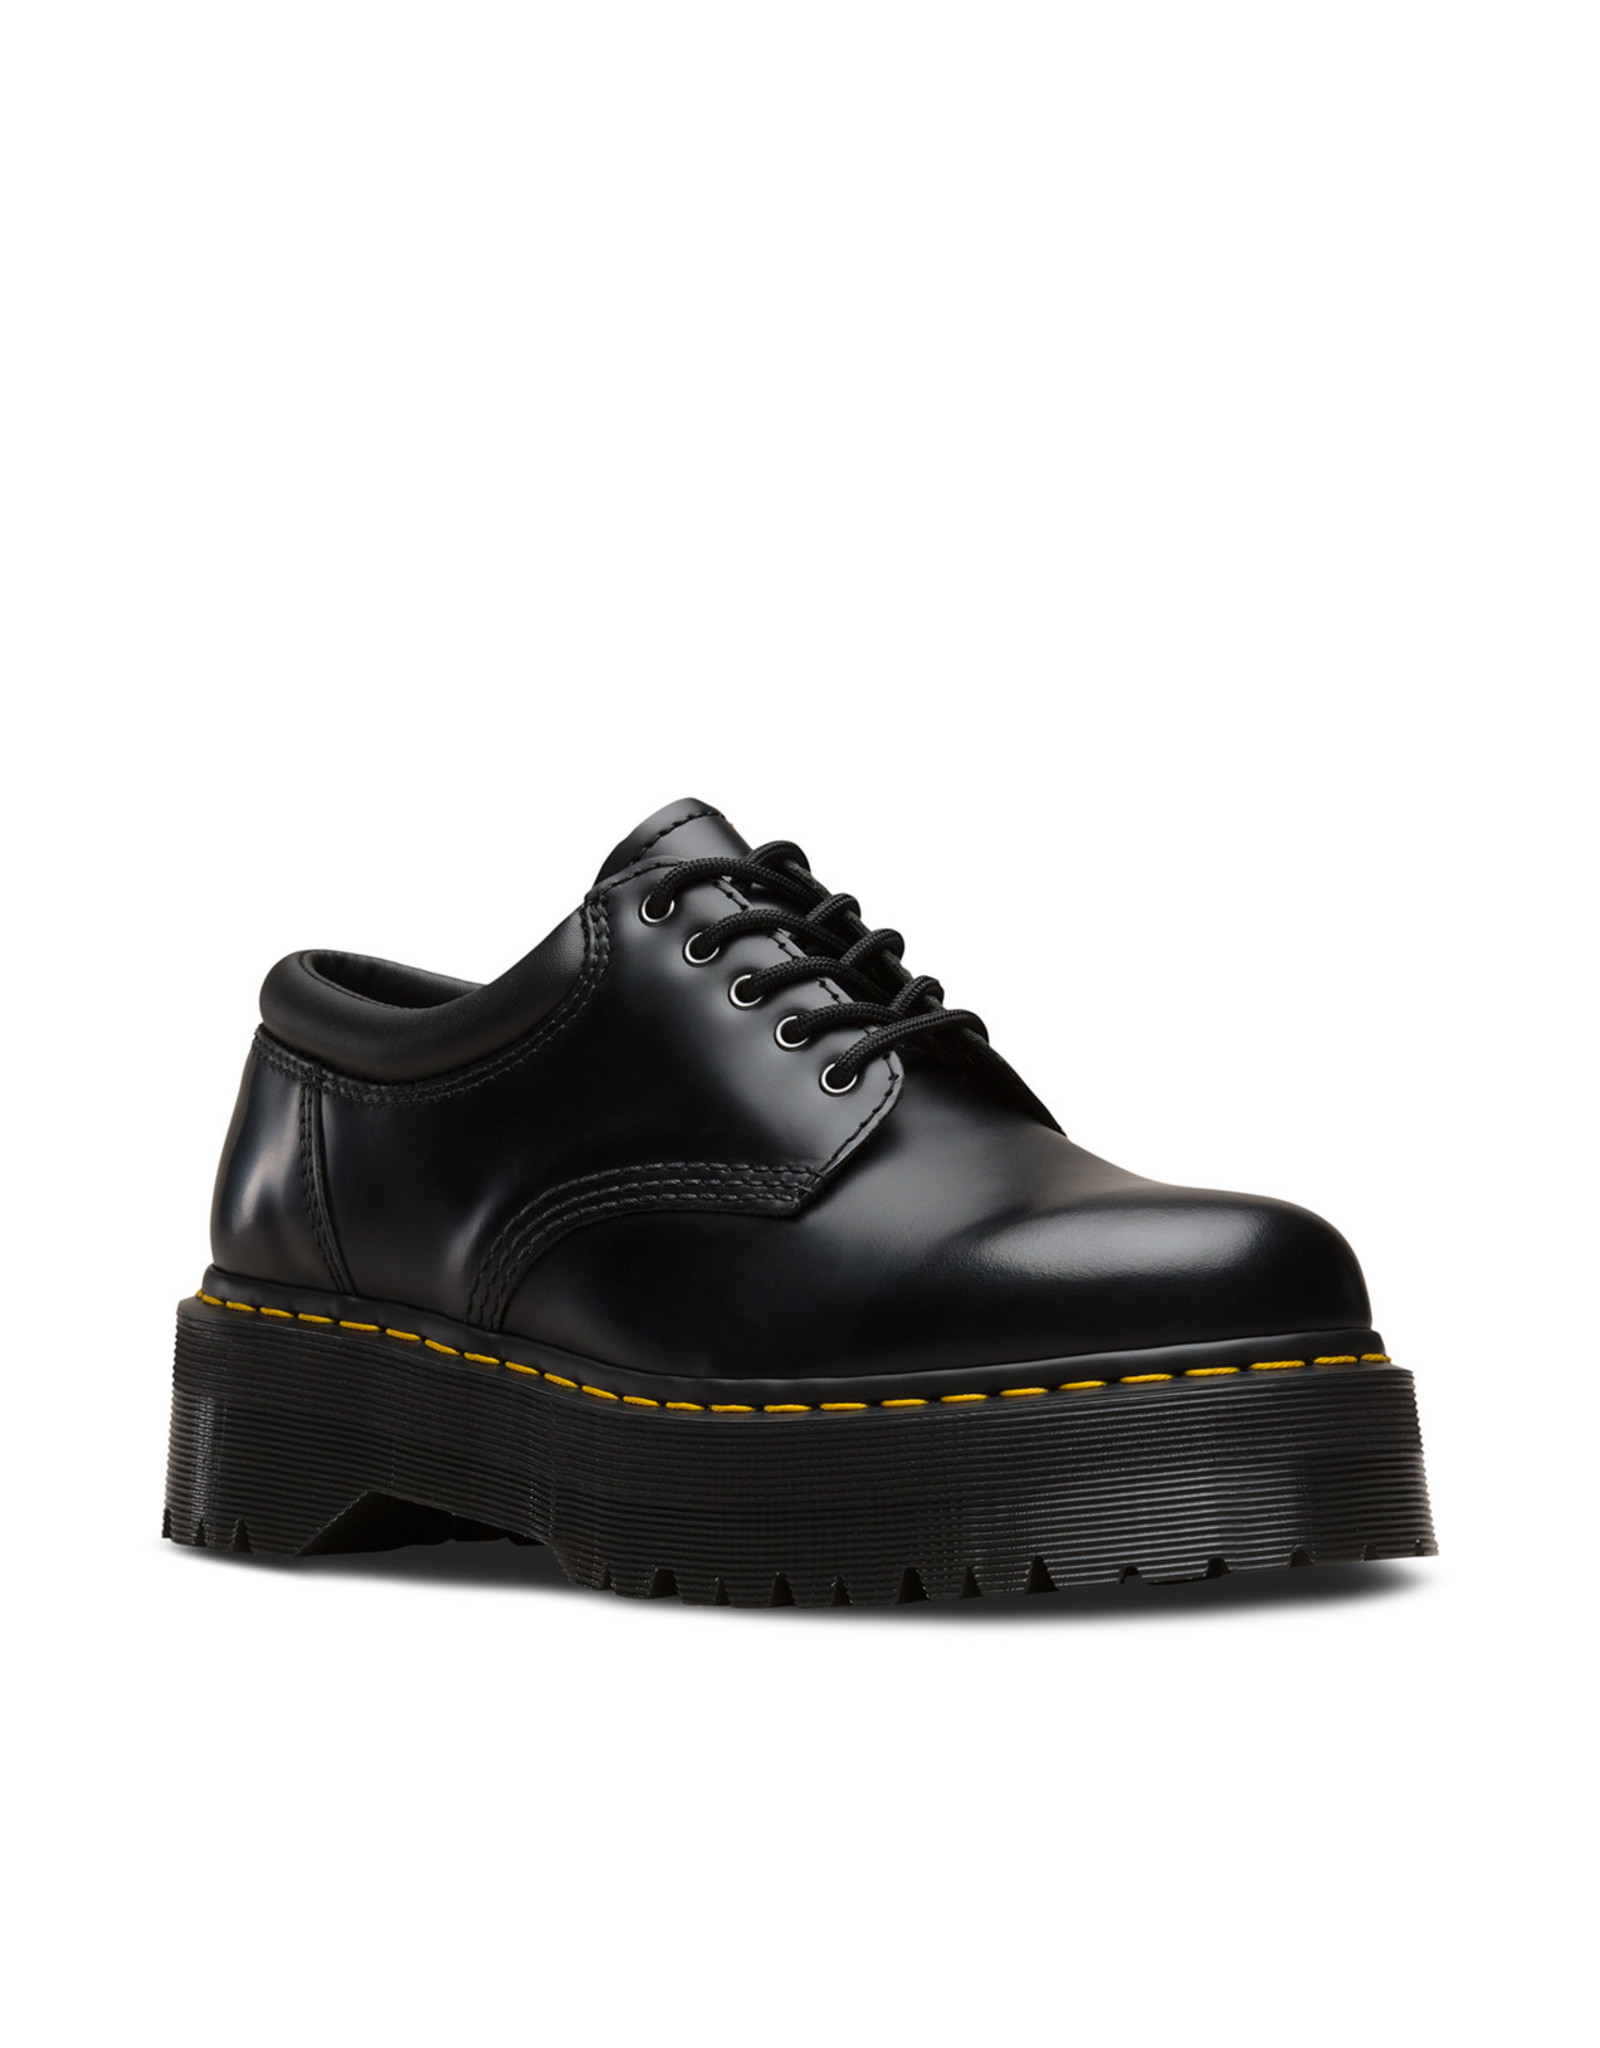 DR. MARTENS 8053 QUAD BLACK POLISHED SMOOTH 509BX-R24690001